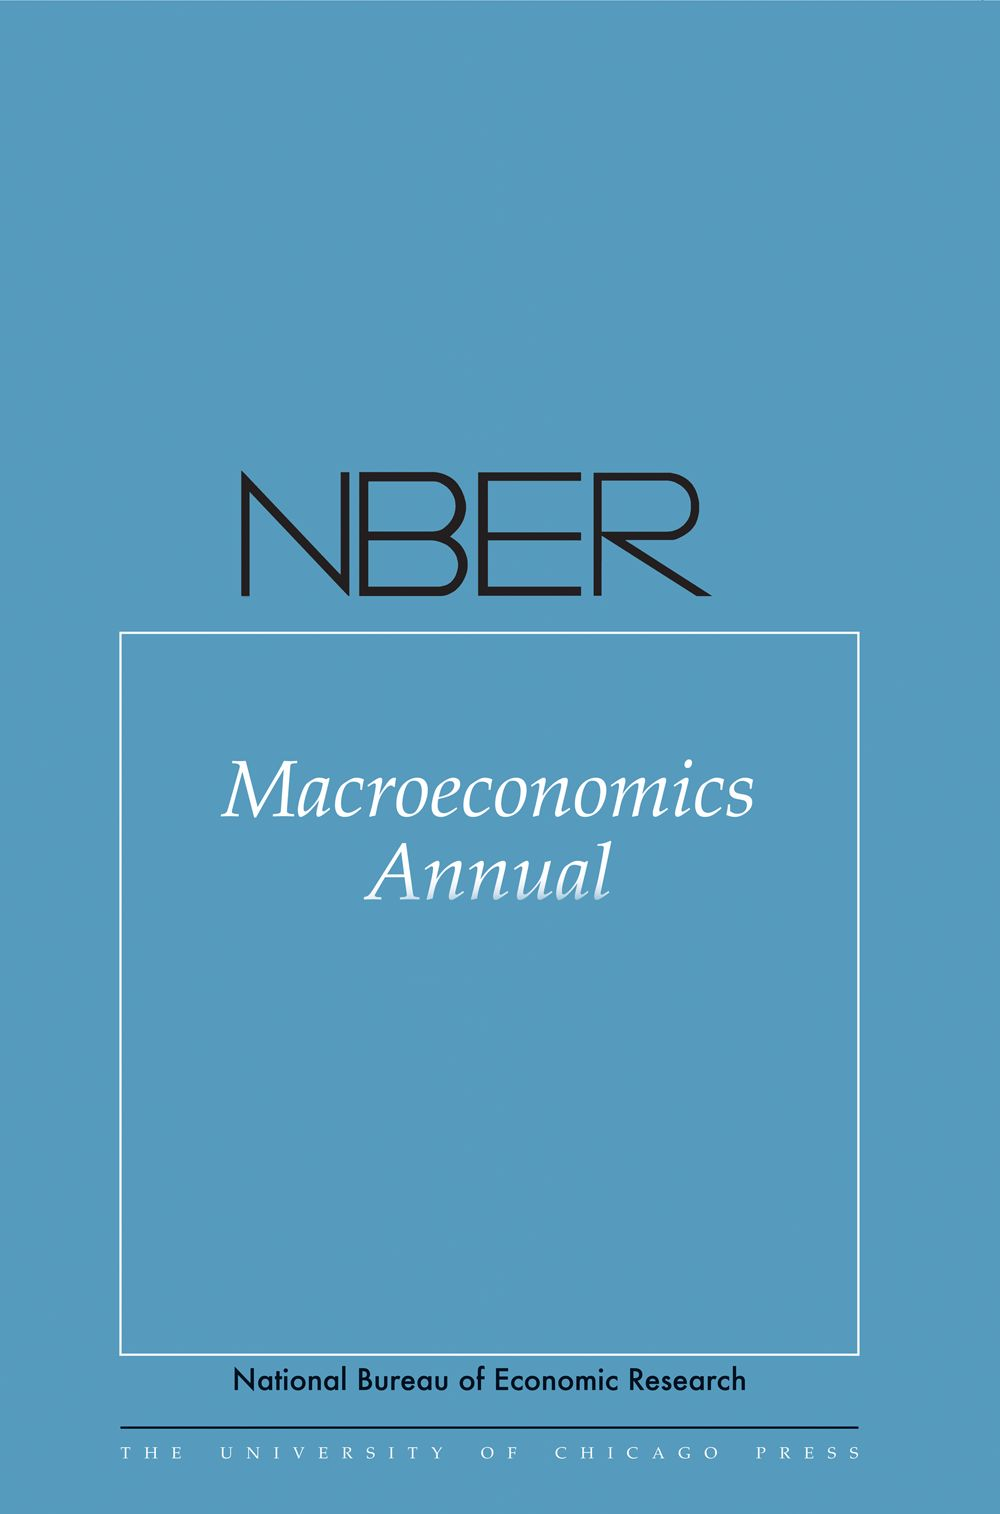 NBER Macroeconomics Annual 2018: Volume 33